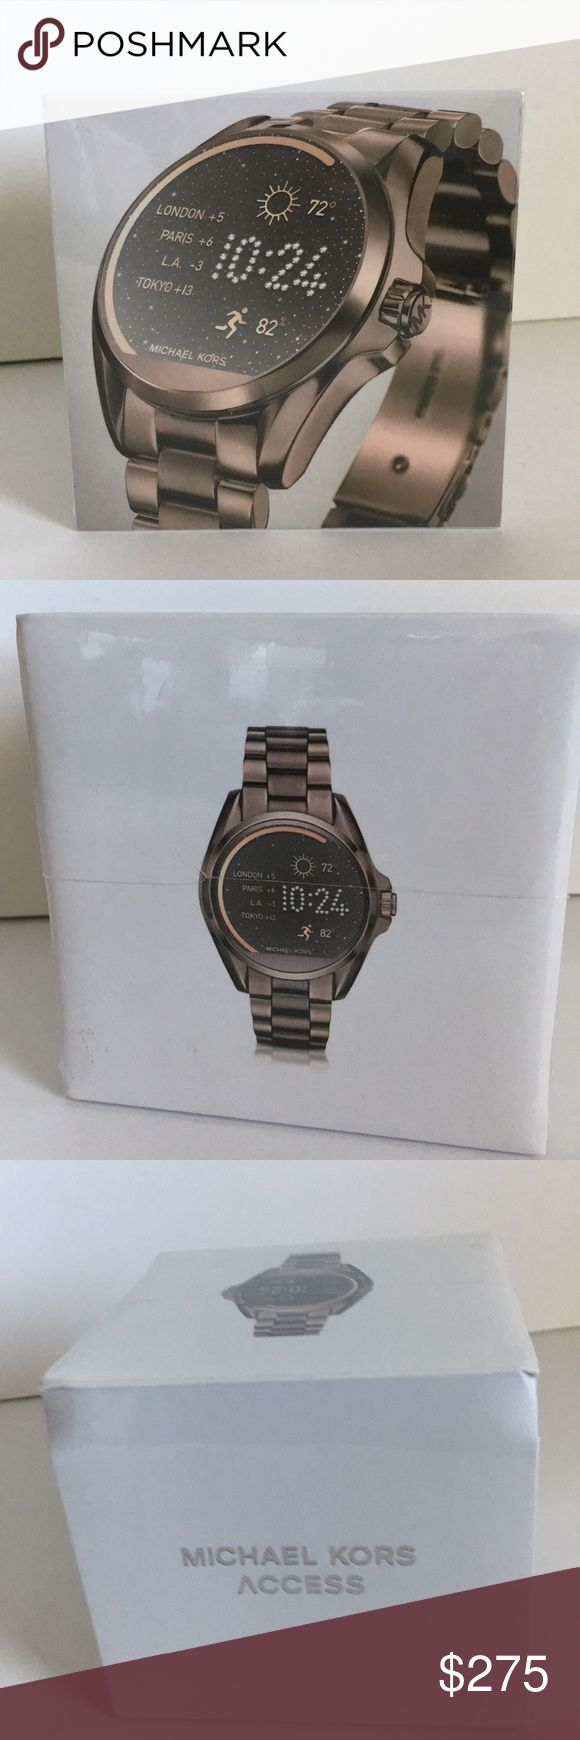 Michael kors smart watch New! Still wrapped! Compatible with android and iPhone. Michael Kors Accessories Watches